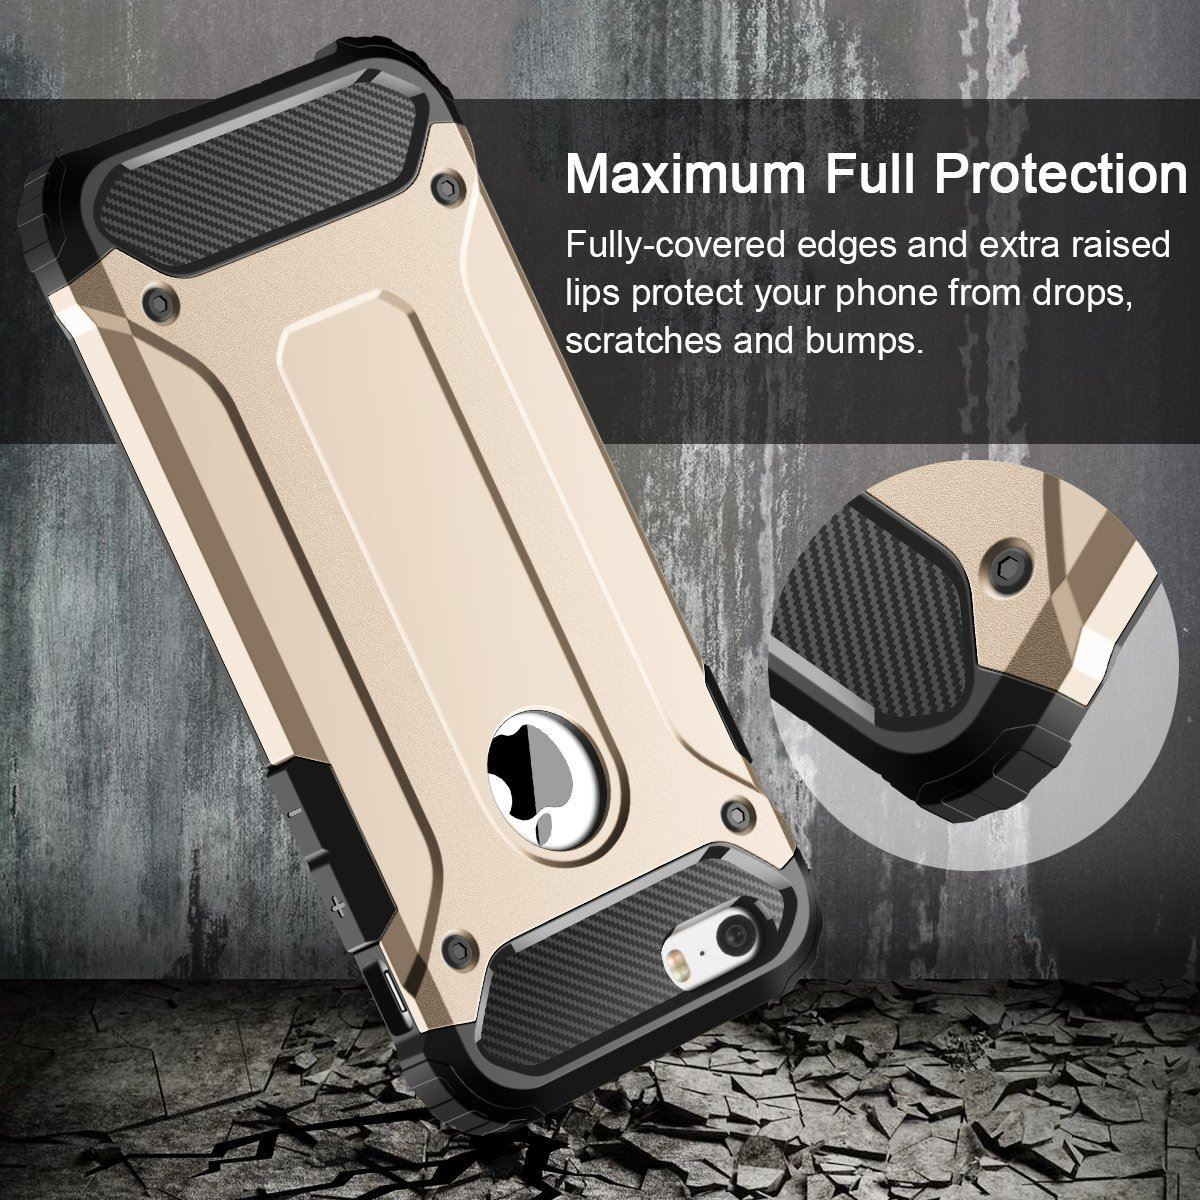 Hybrid-Armor-Shockproof-Rugged-Bumper-Case-For-Apple-iPhone-10-X-8-7-Plus-6s-5s miniature 50